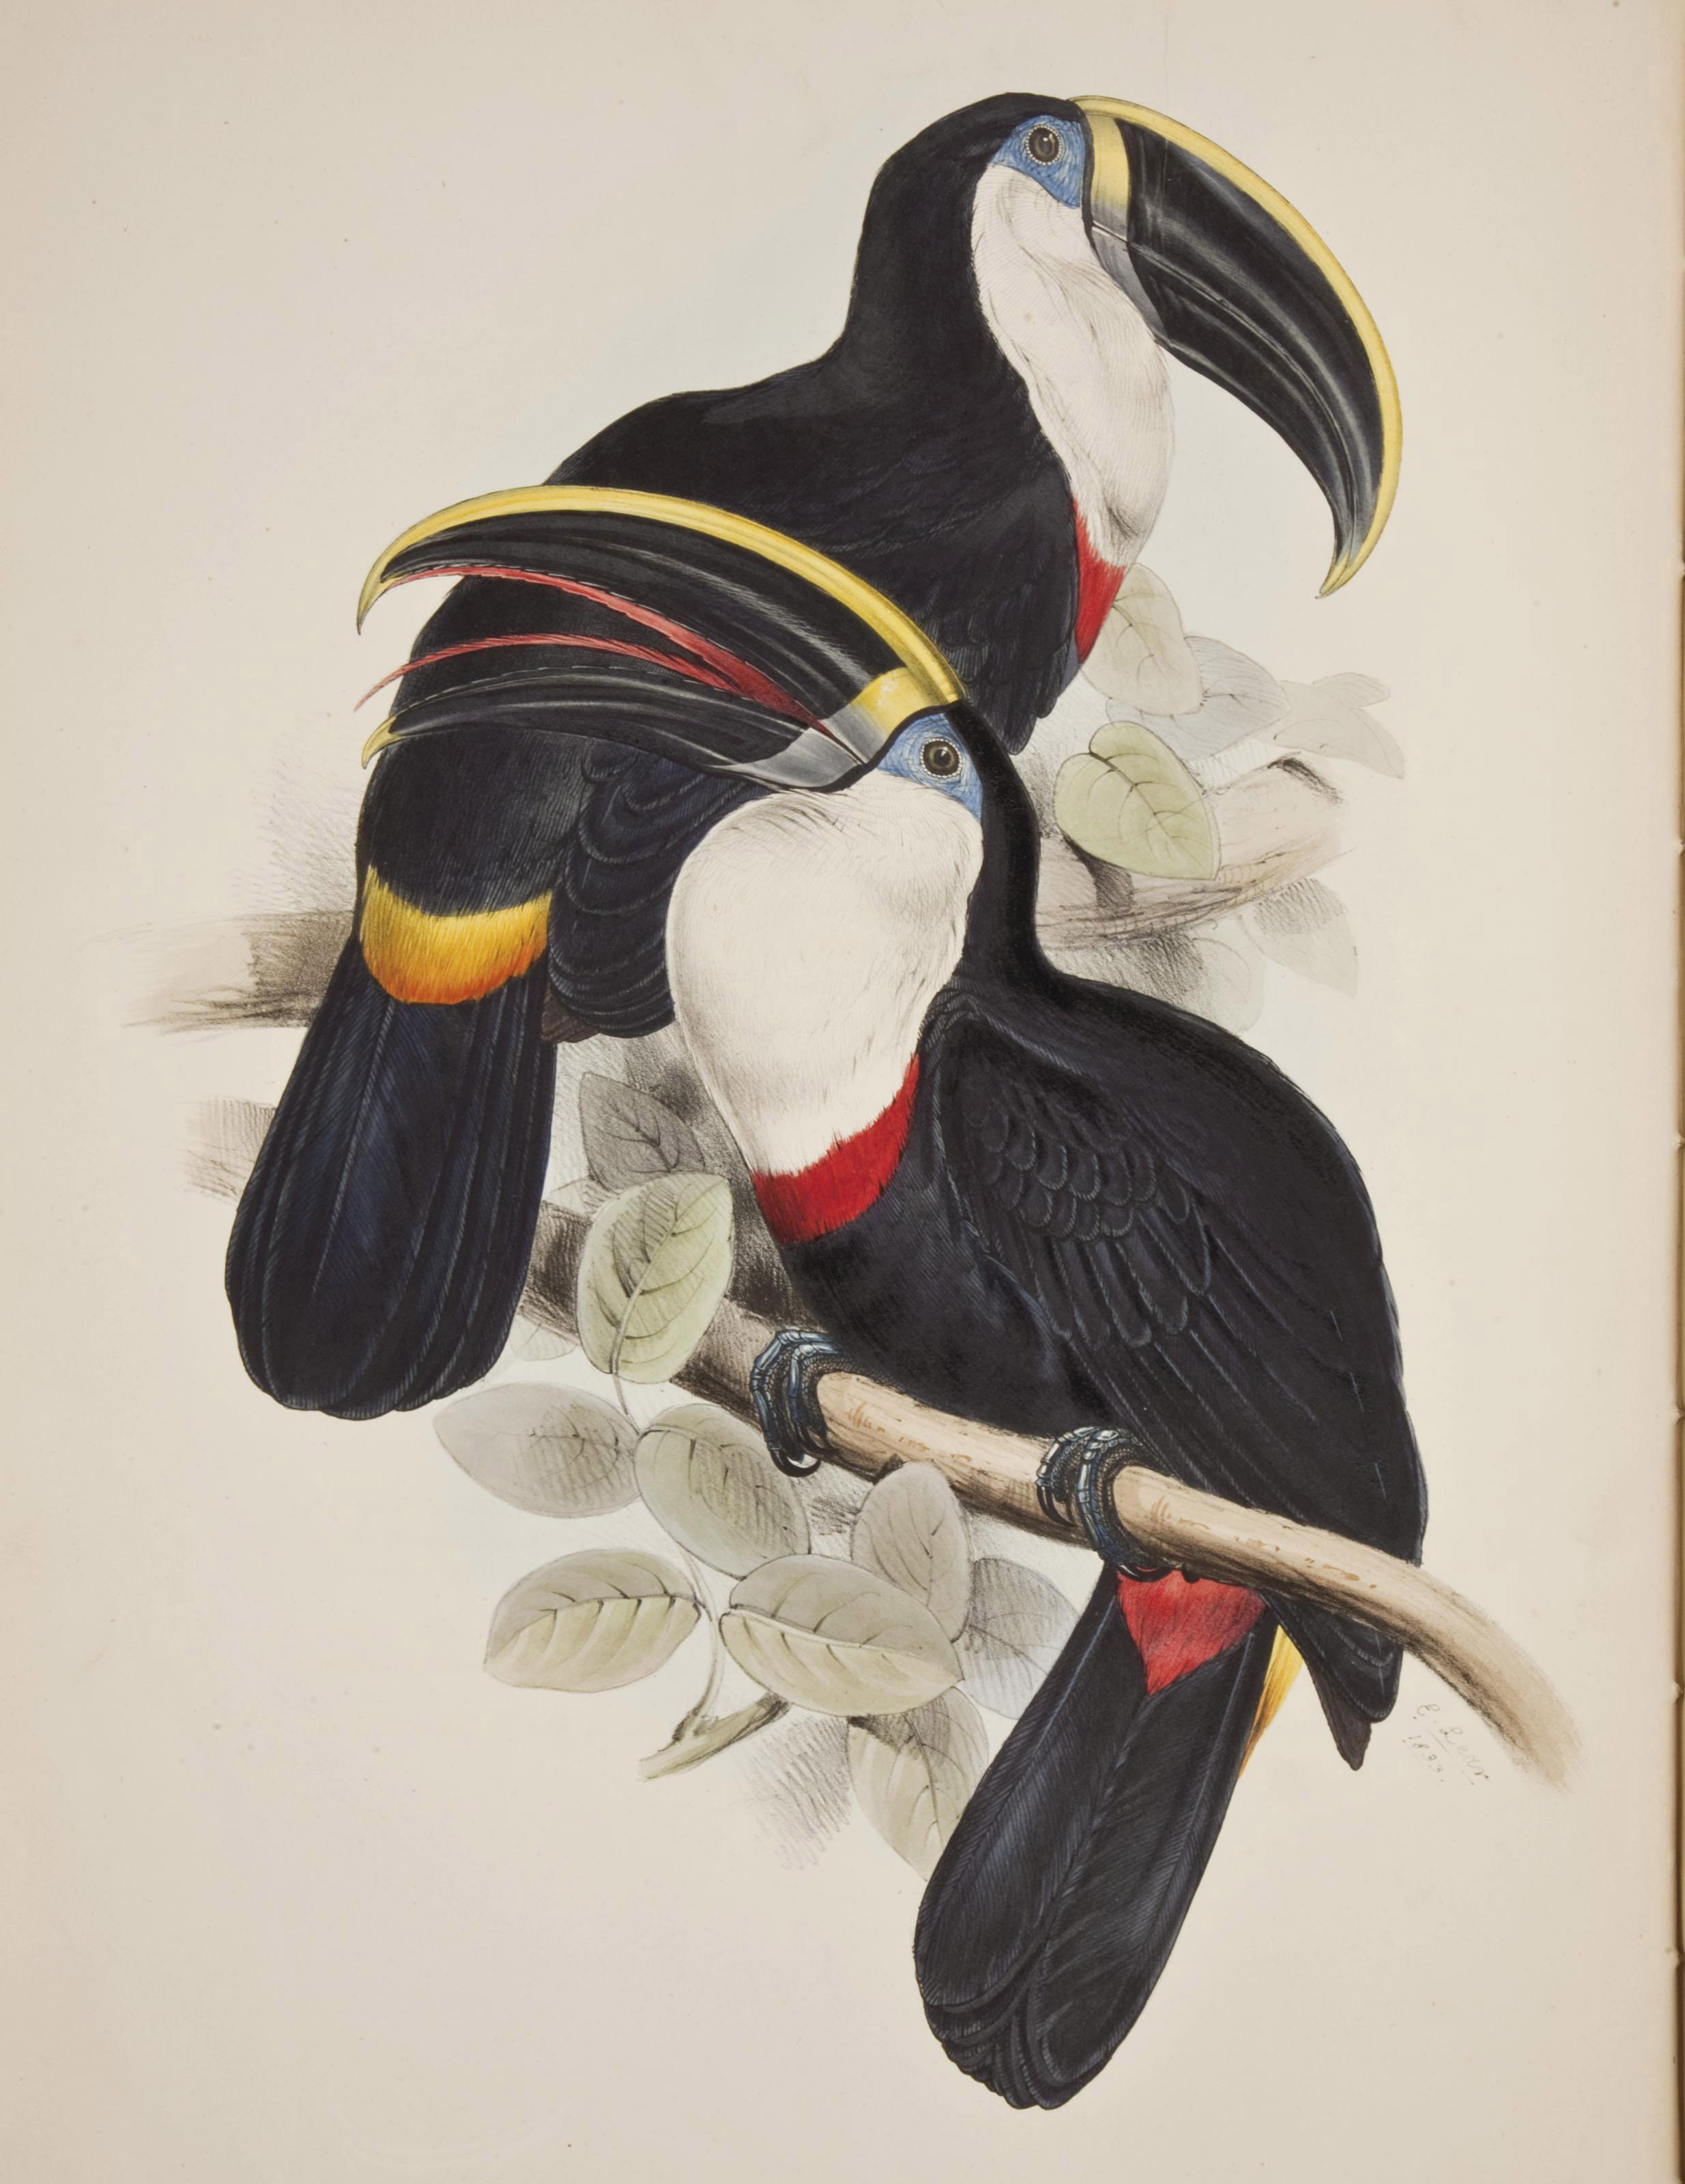 GOULD, John (1804-1881). A Monograph of the Ramphastidae, or Family of Toucans. Londres: pour l'auteur, [1833-] 1834.